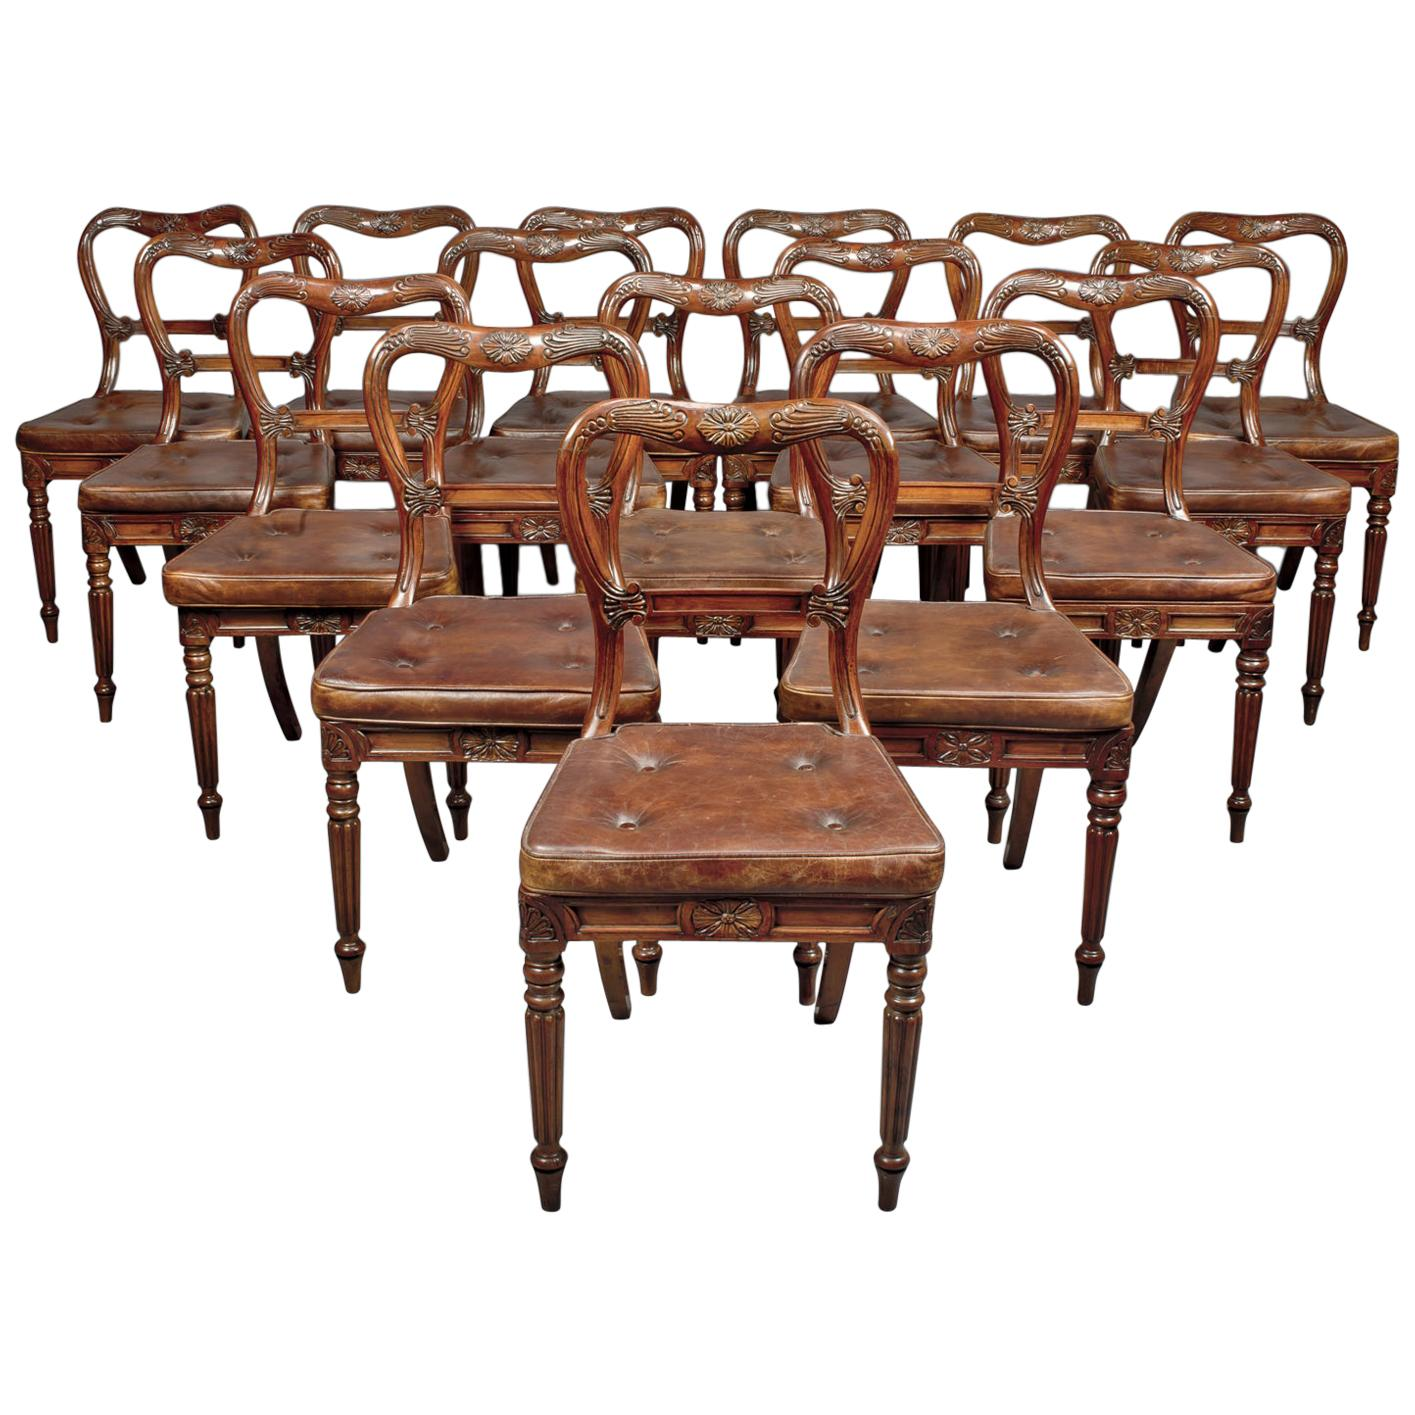 Set of Eighteen Red Walnut Dining Chairs Attributed to Gillows, circa 1830